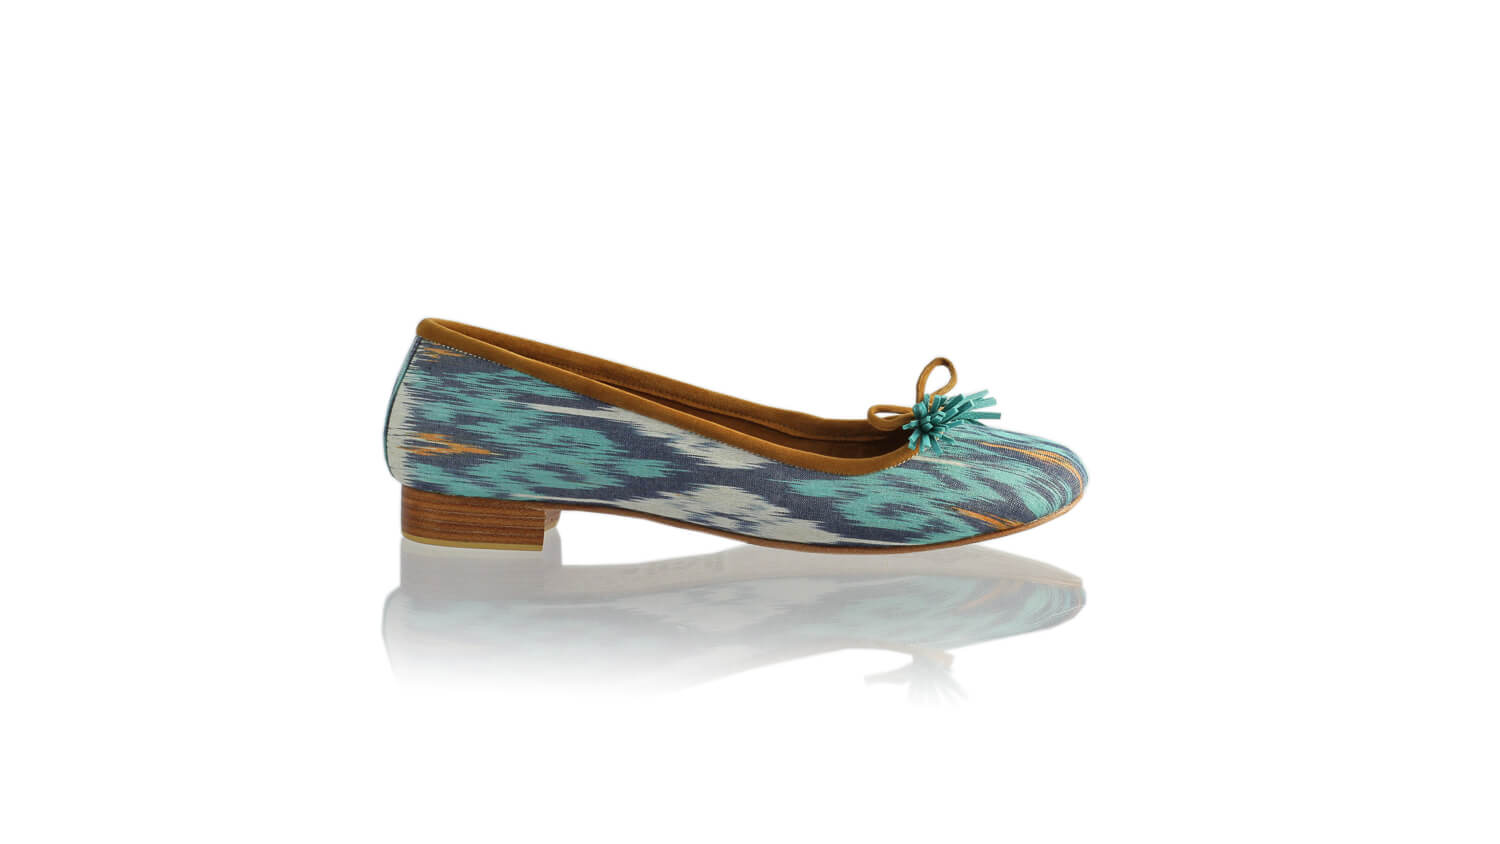 Leather-shoes-Noemi 20mm Ballet - Aqua & Grey Handwoven Ikat-flats ballet-NILUH DJELANTIK-NILUH DJELANTIK